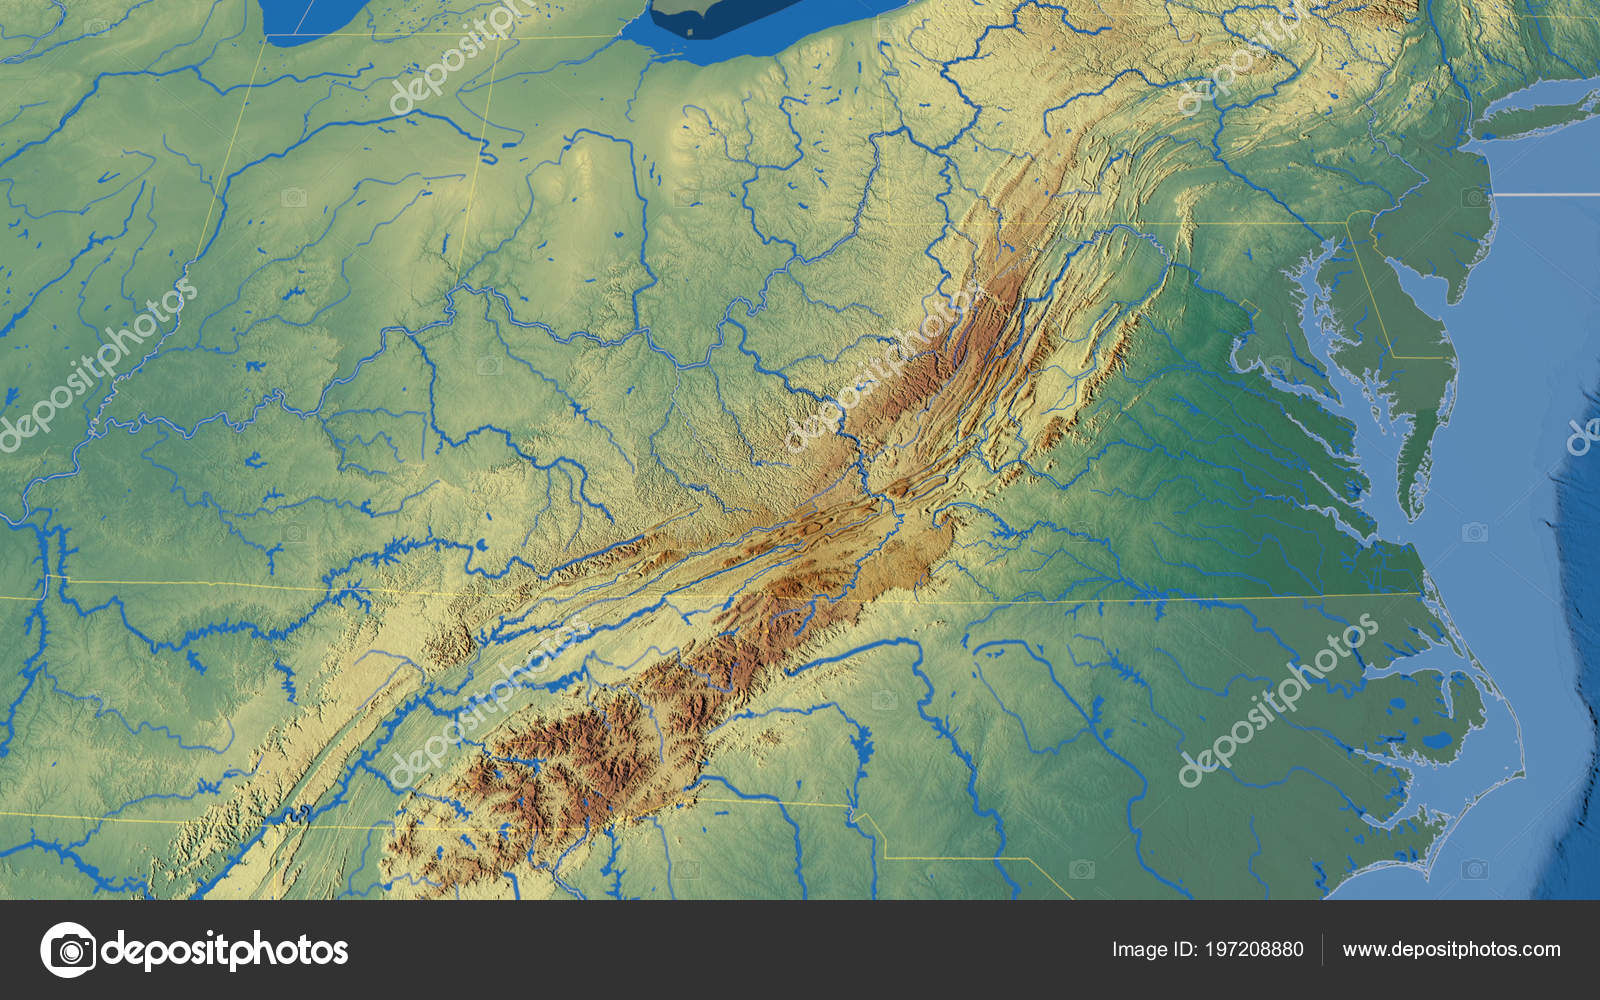 Relief Map Of Virginia.Virginia Region United States Outlined Topographic Relief Map